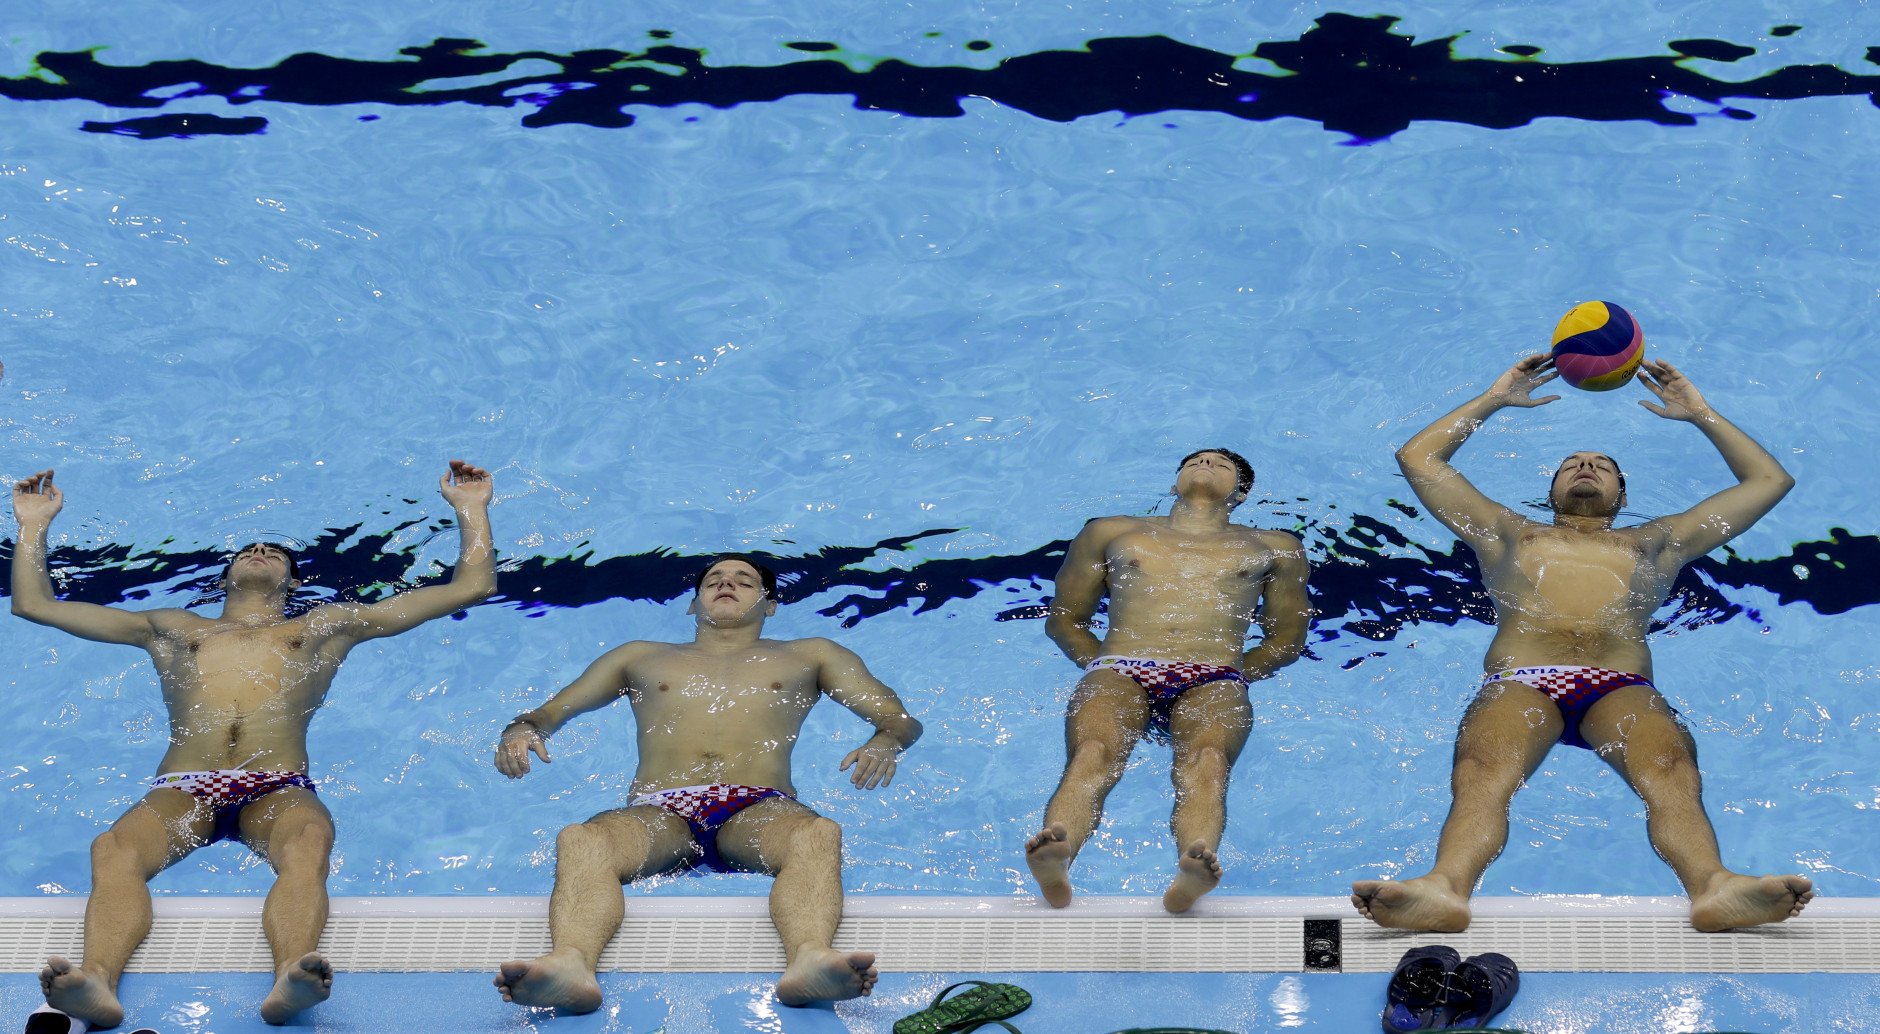 Croatia's water polo team exercise inside the pool at the Olympic village ahead of the 2016 Summer Olympics in Rio de Janeiro, Brazil, Wednesday, Aug. 3, 2016. The Games opening ceremony is on Friday.(AP Photo/Natacha Pisarenko)